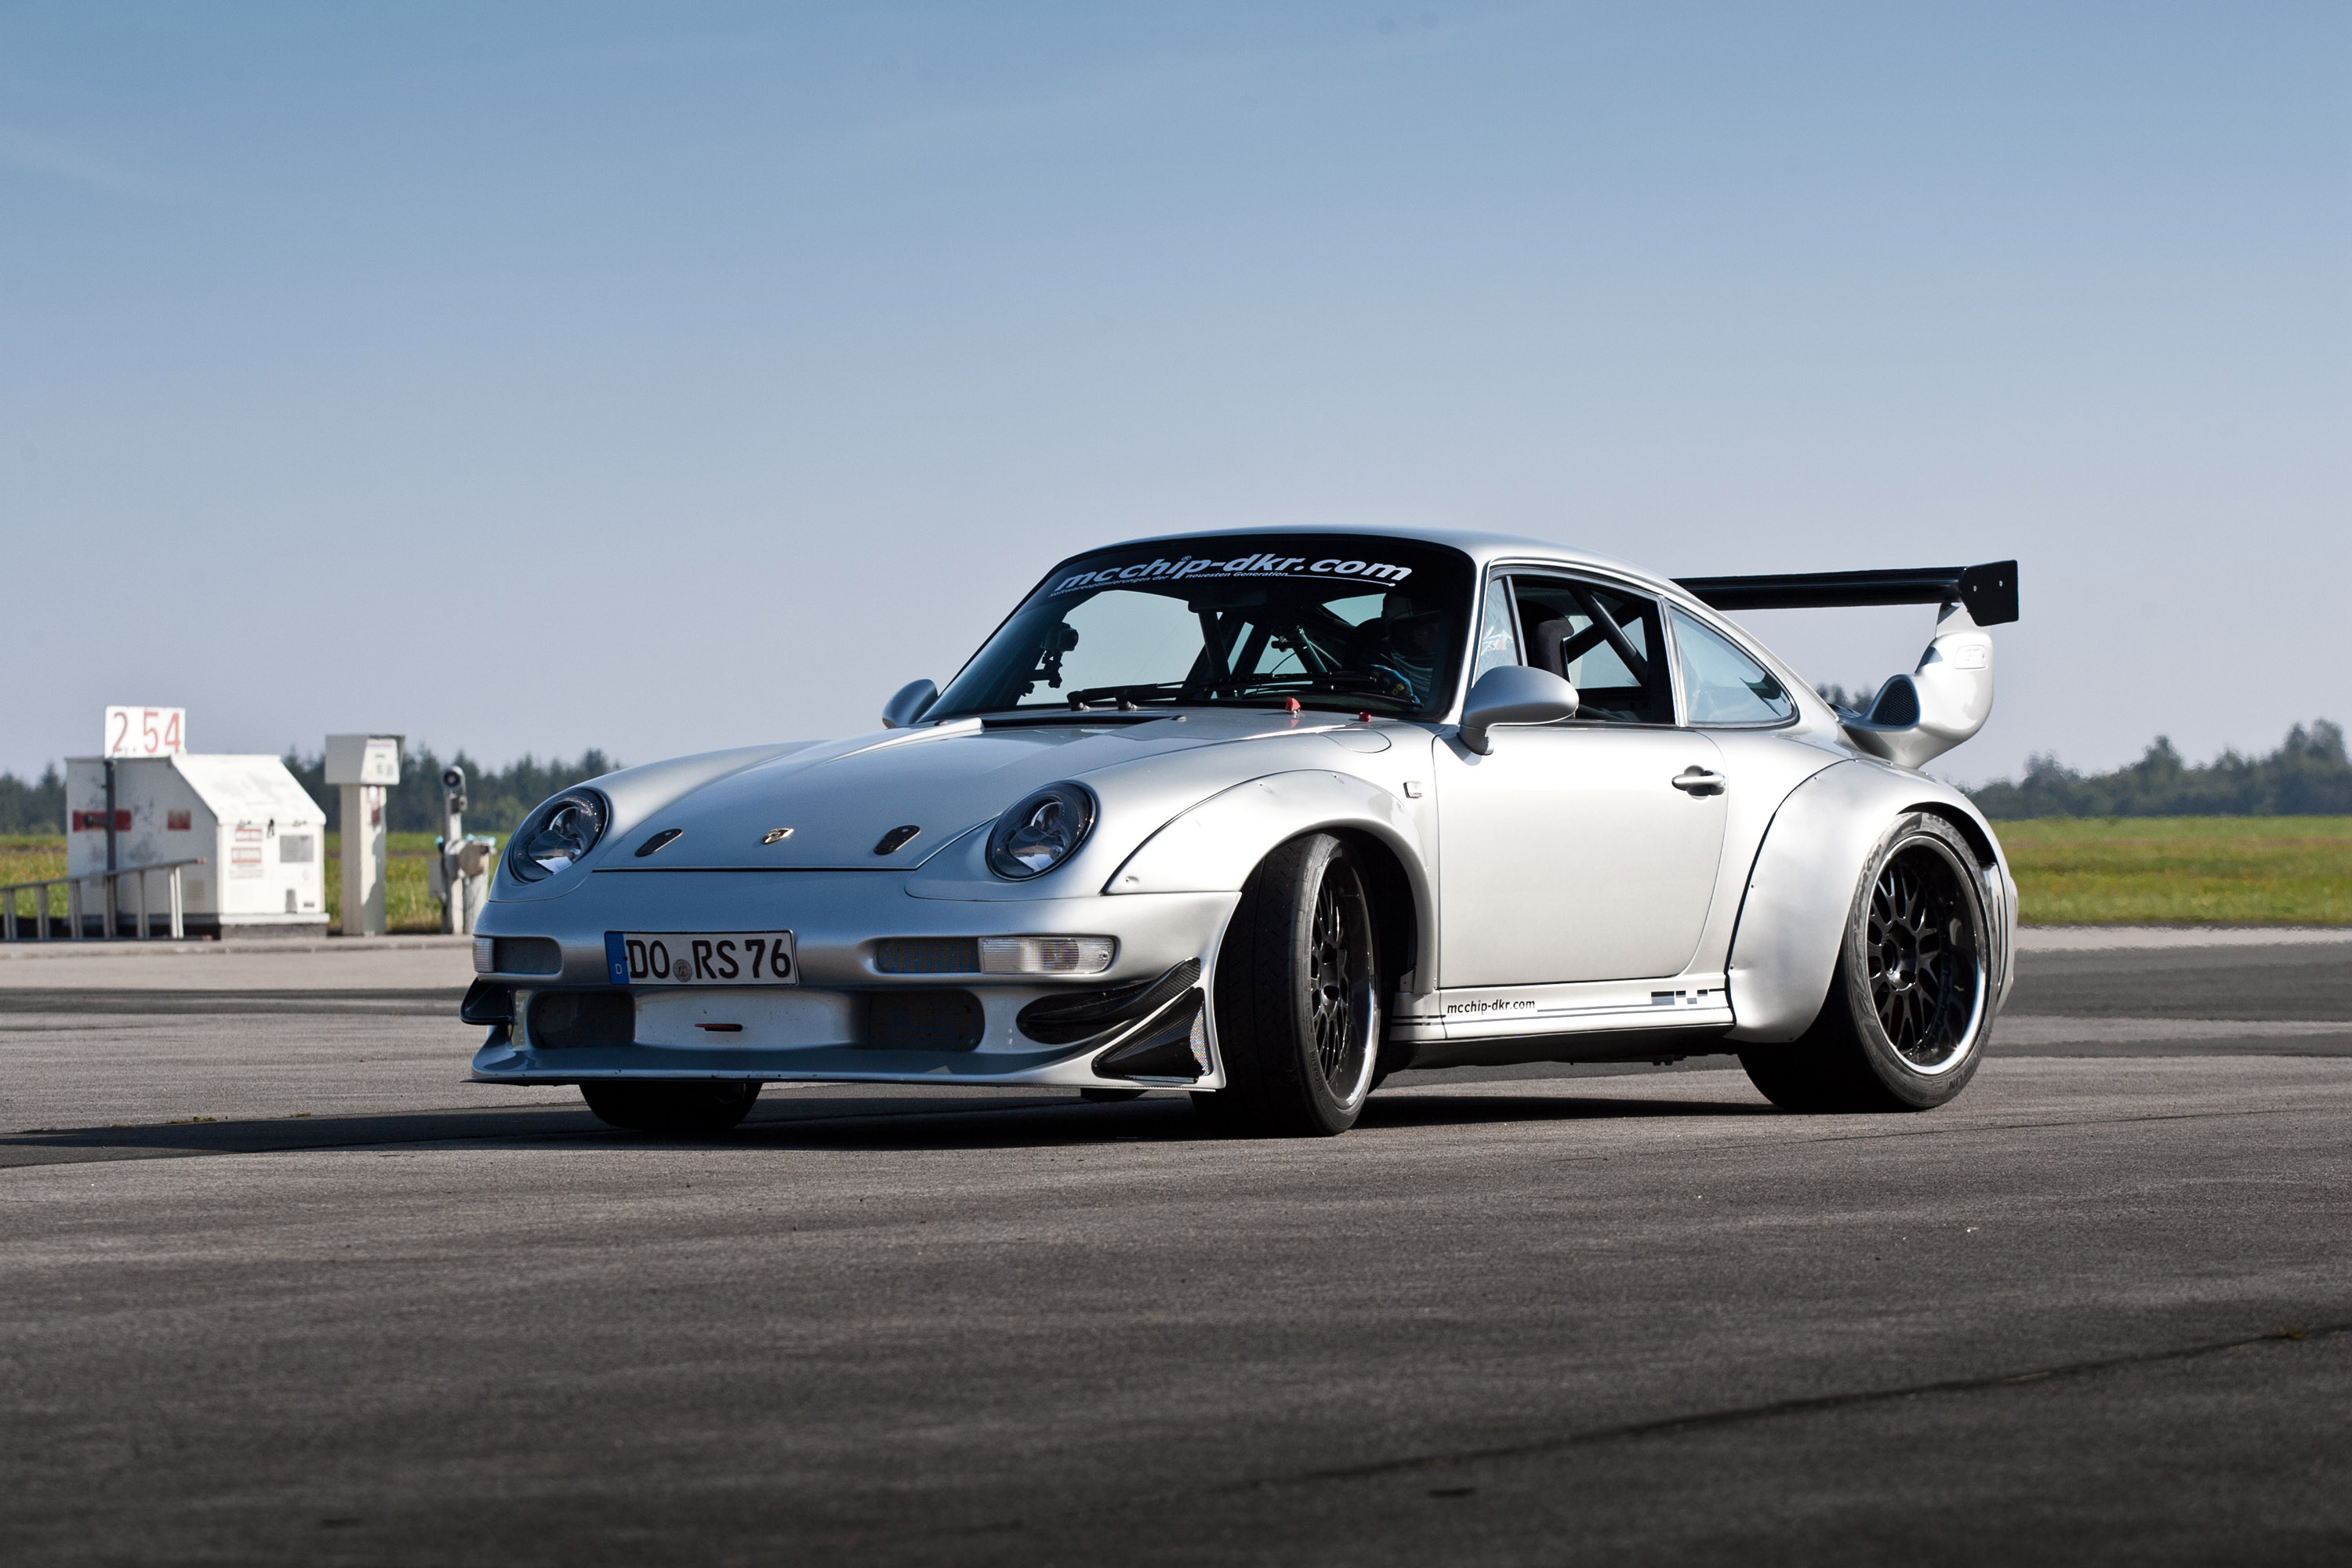 2012 Mcchip-DKR Porsche 993 GT2 Turbo Widebody MC600 tuning supercar supercars q